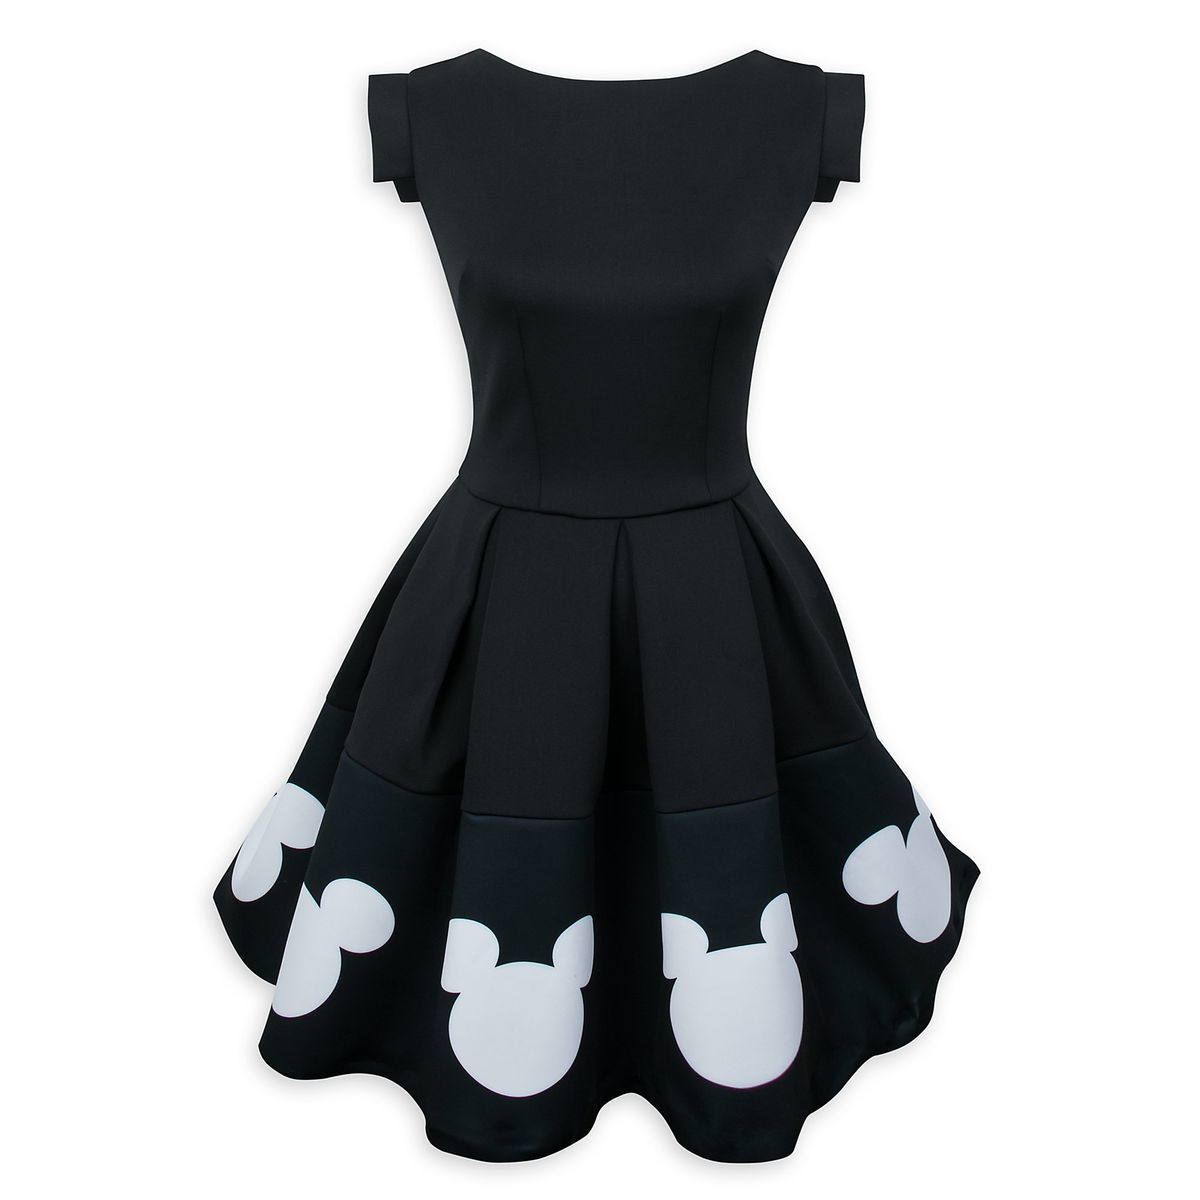 mickey mouse icon dress for women by sugarbird